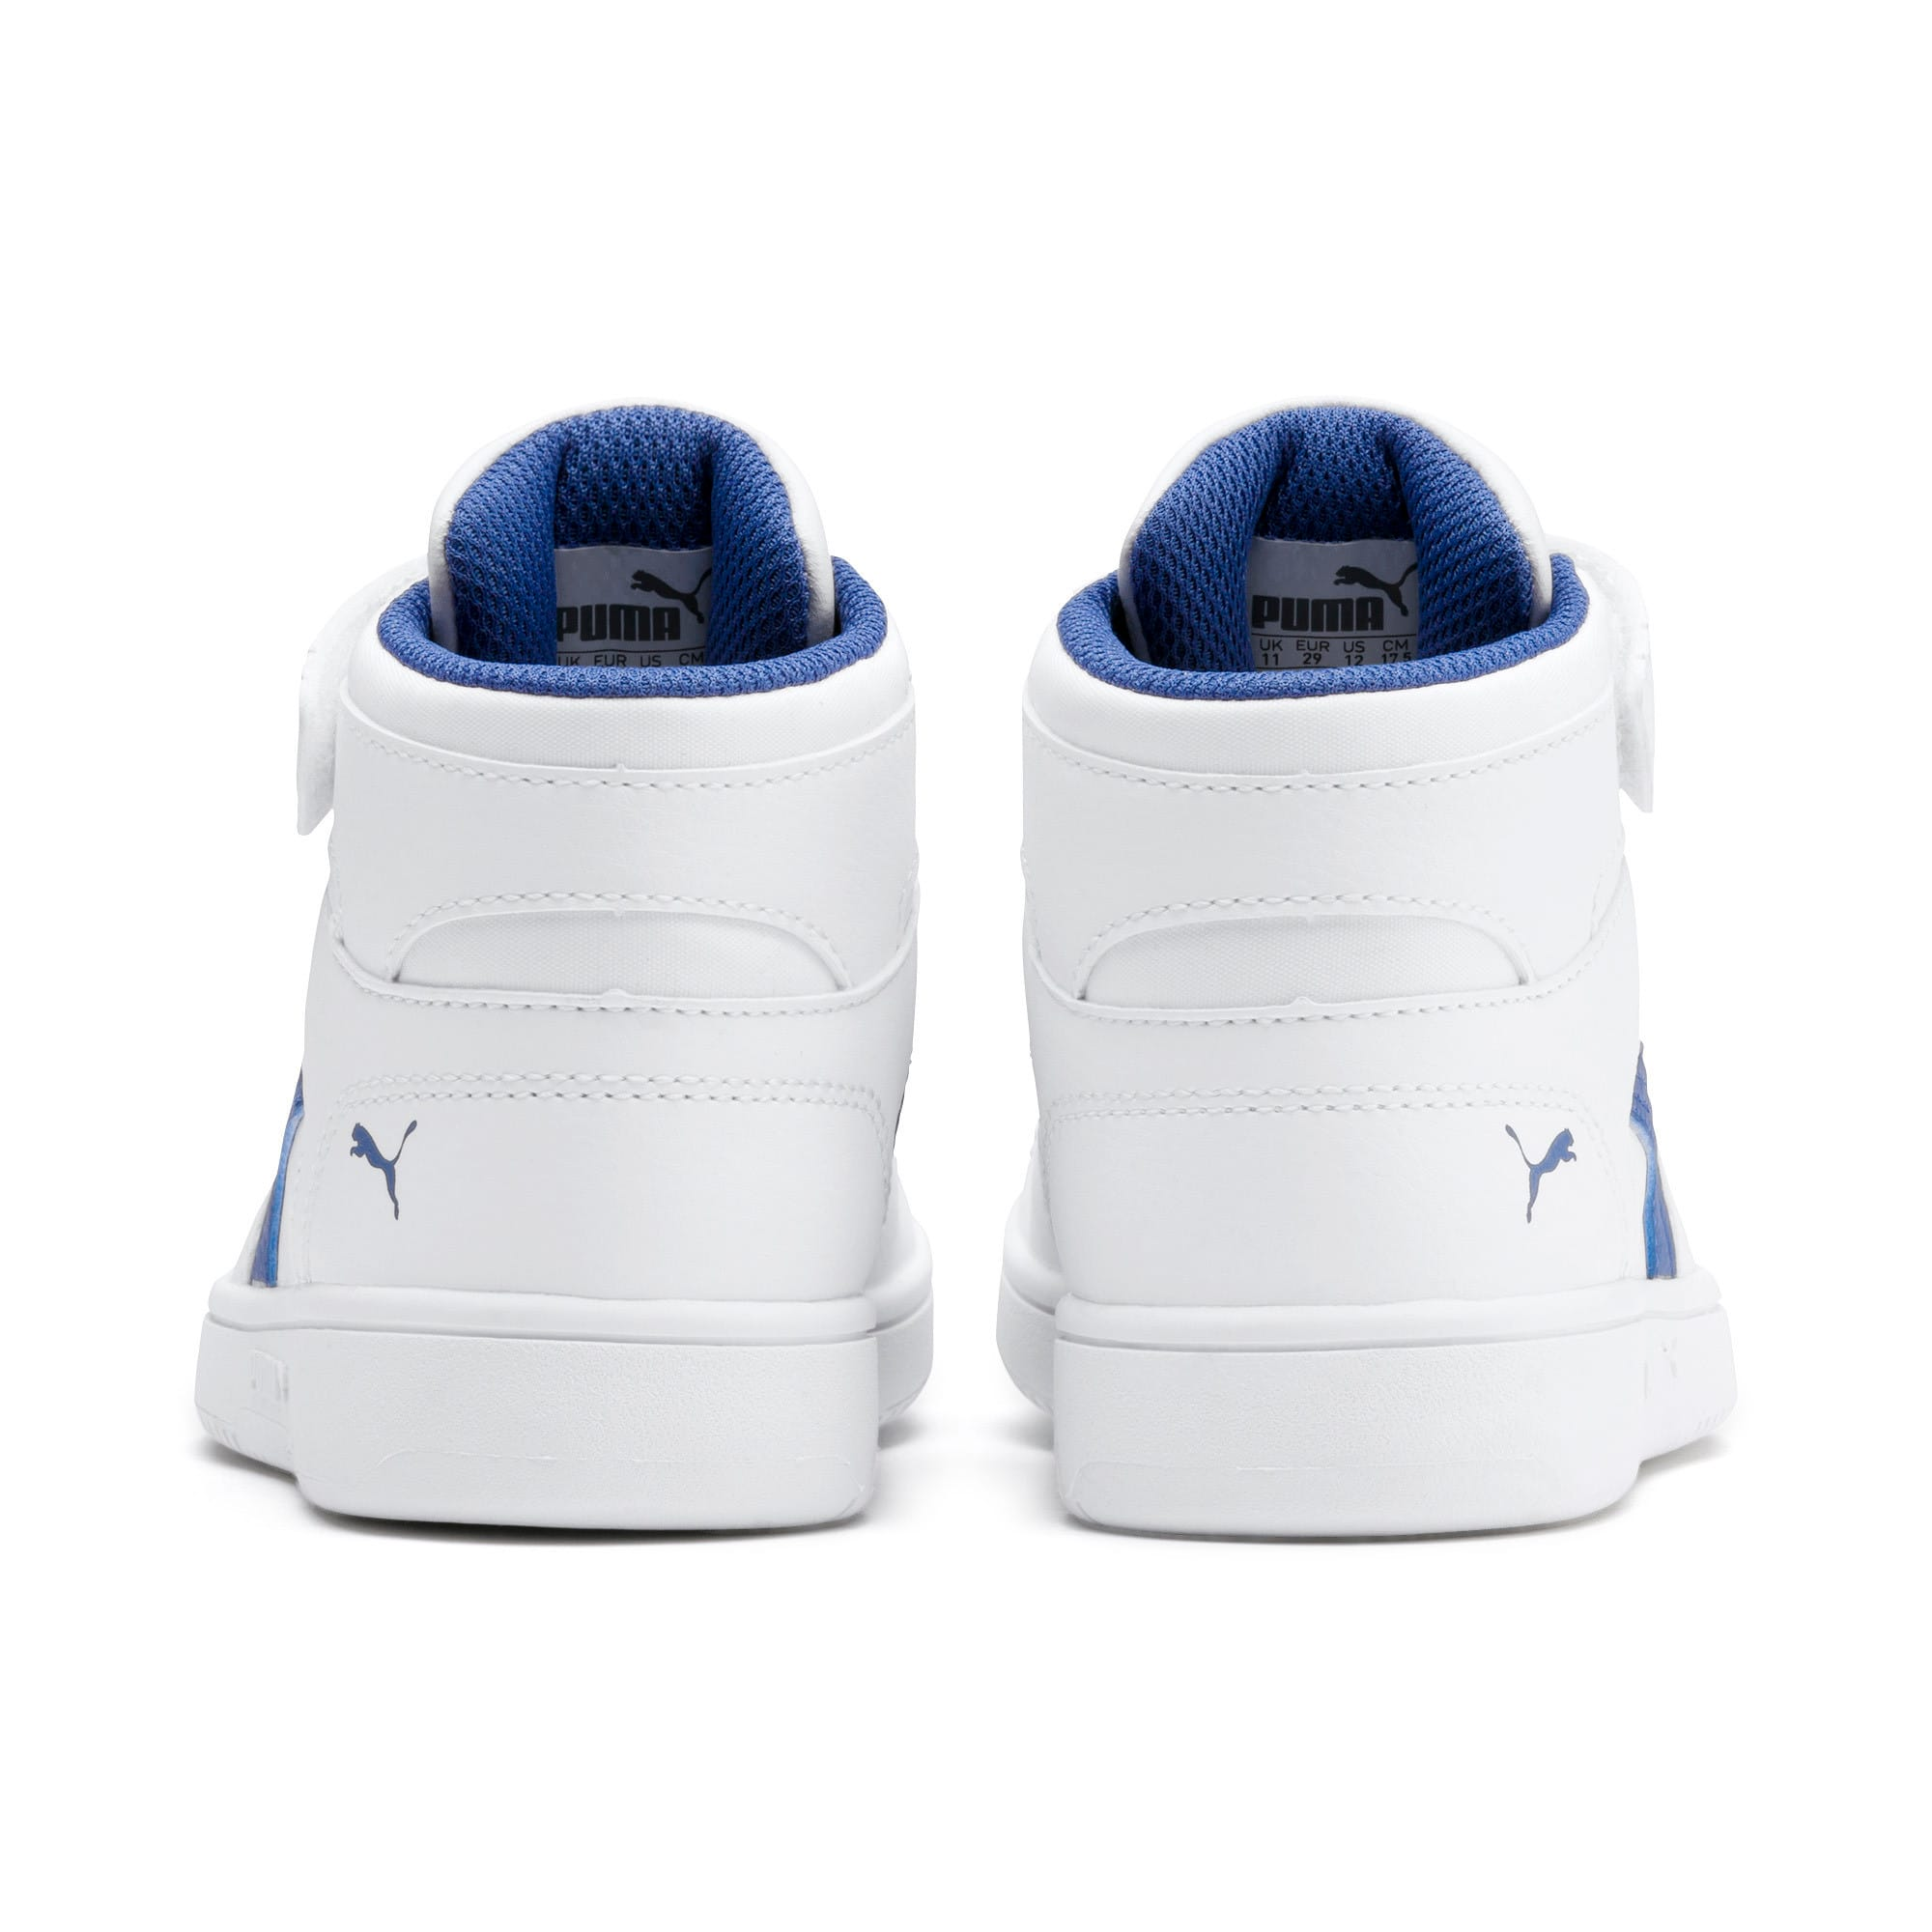 Thumbnail 3 of Rebound Lay-Up SL V Kids' Trainers, Puma White-Galaxy Blue, medium-IND